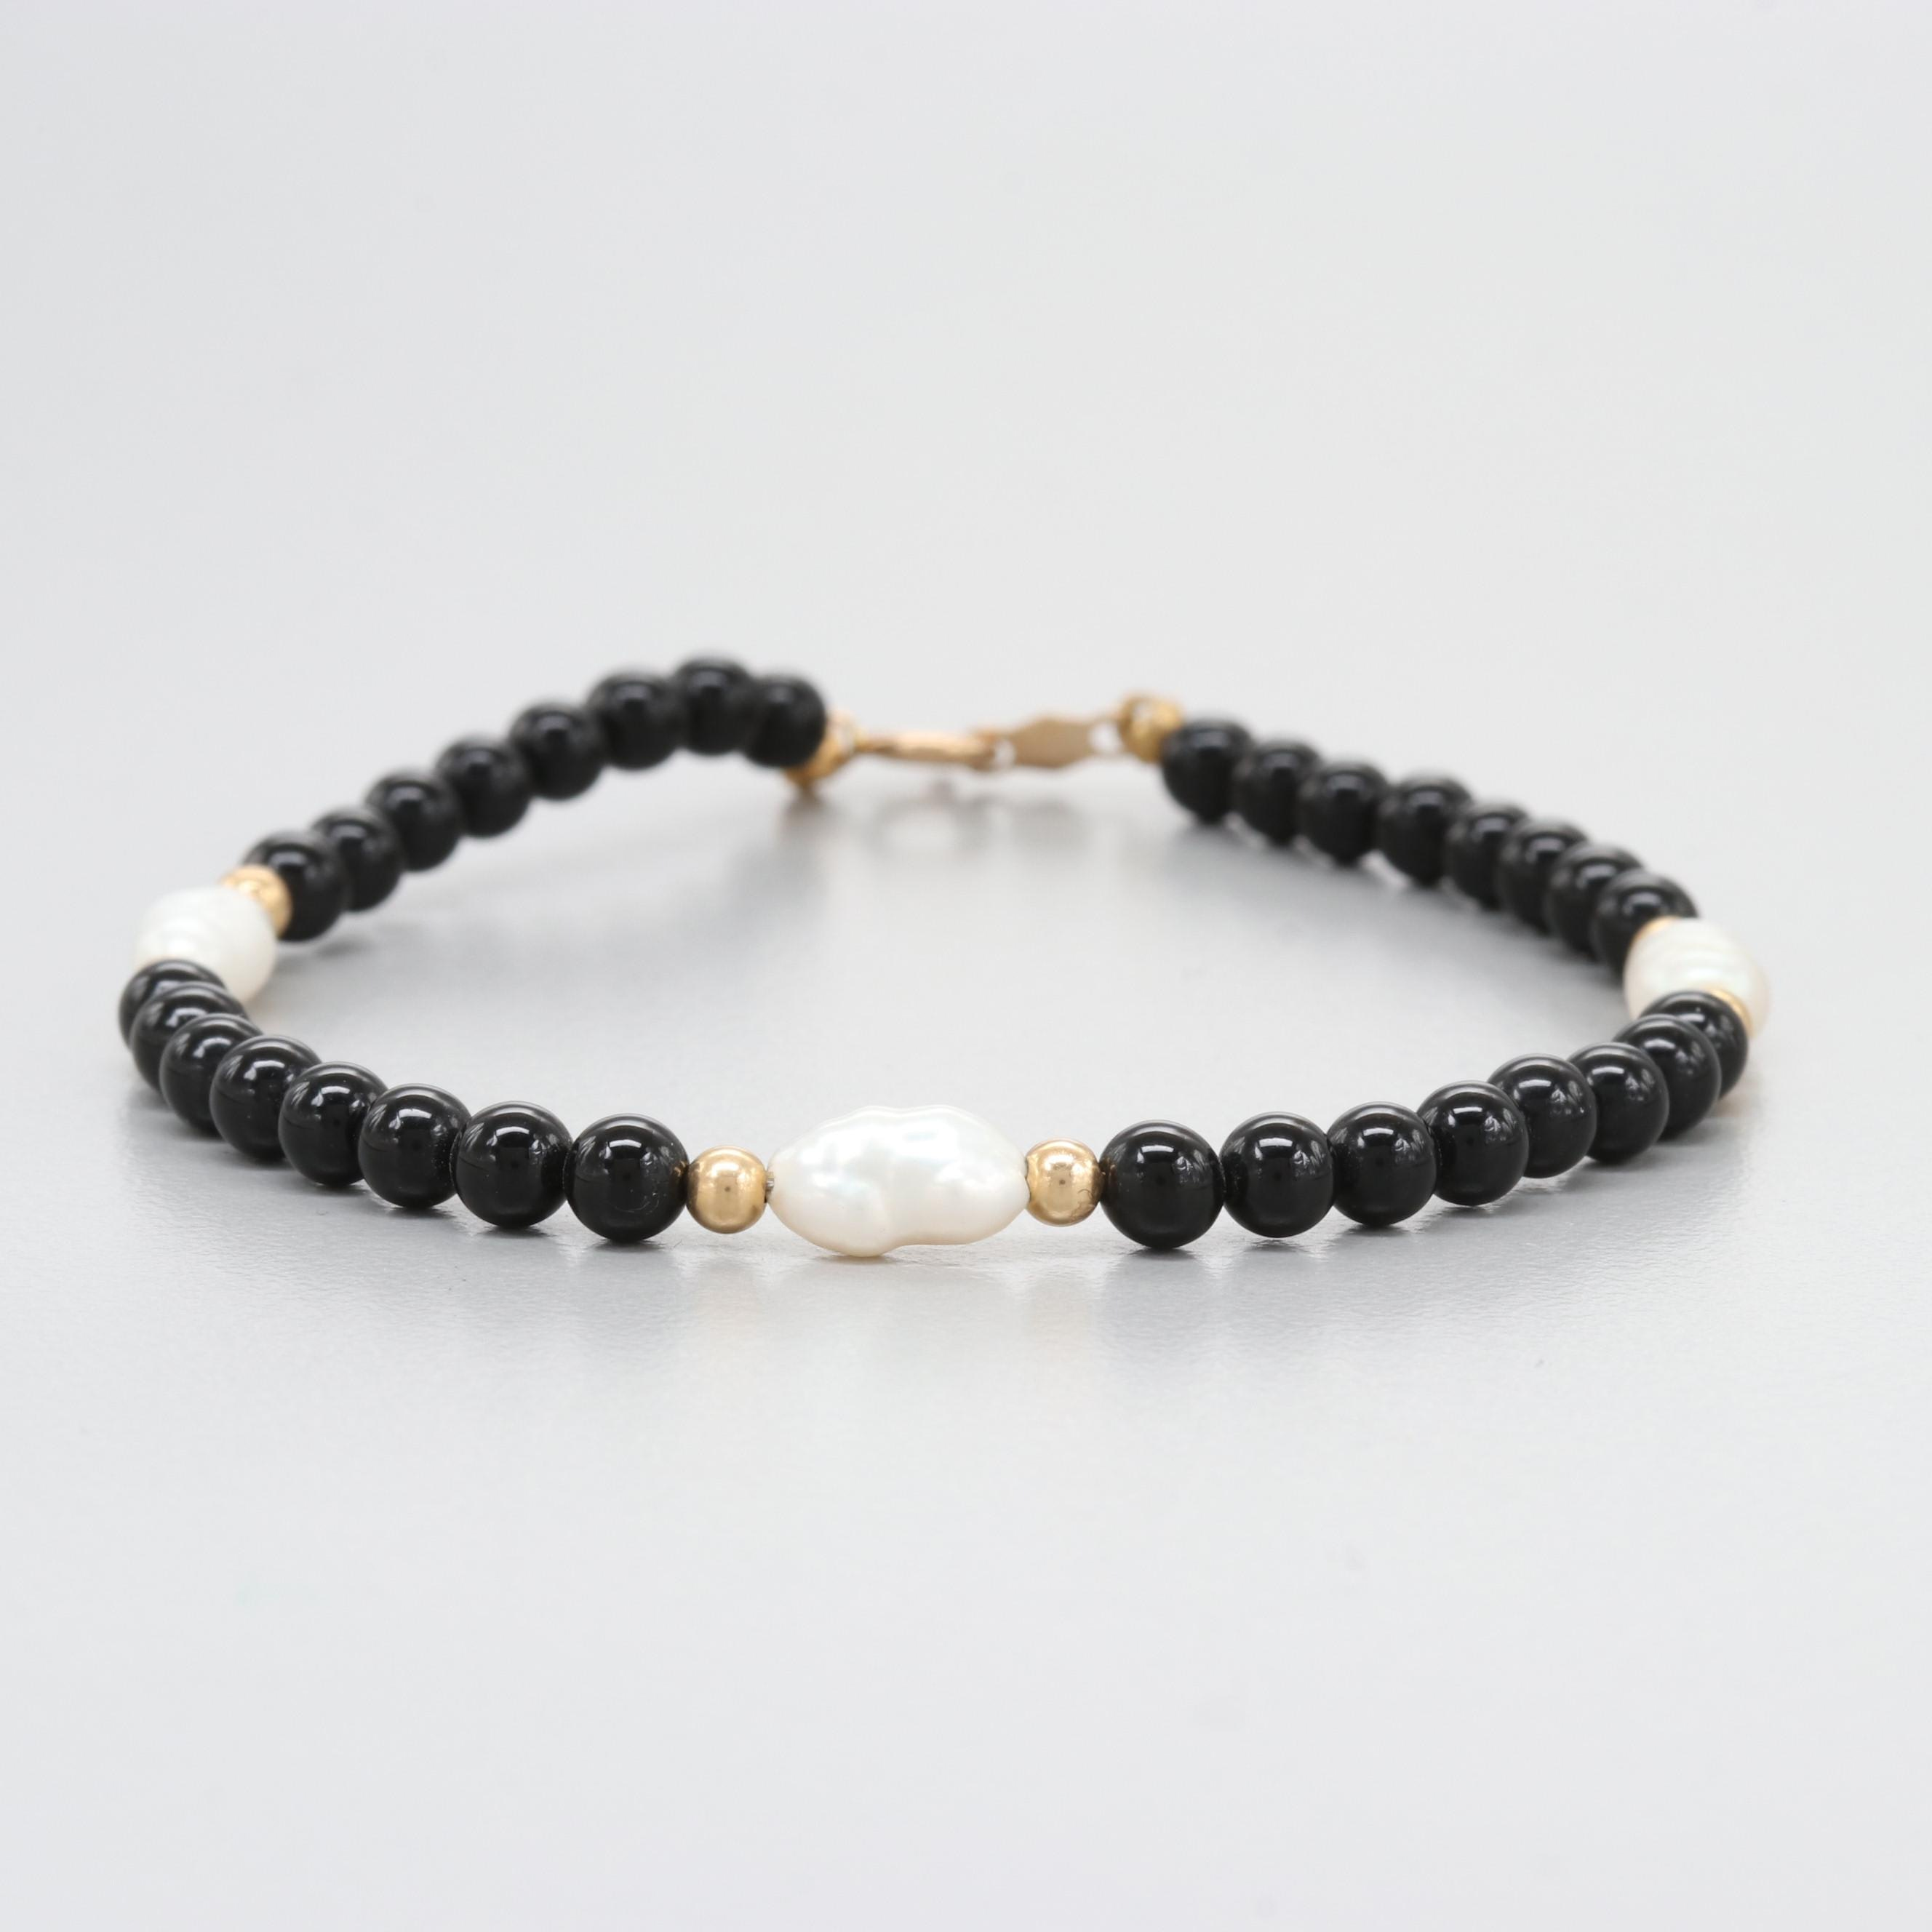 14K Yellow Gold Black Onyx and Cultured Pearl Bracelet